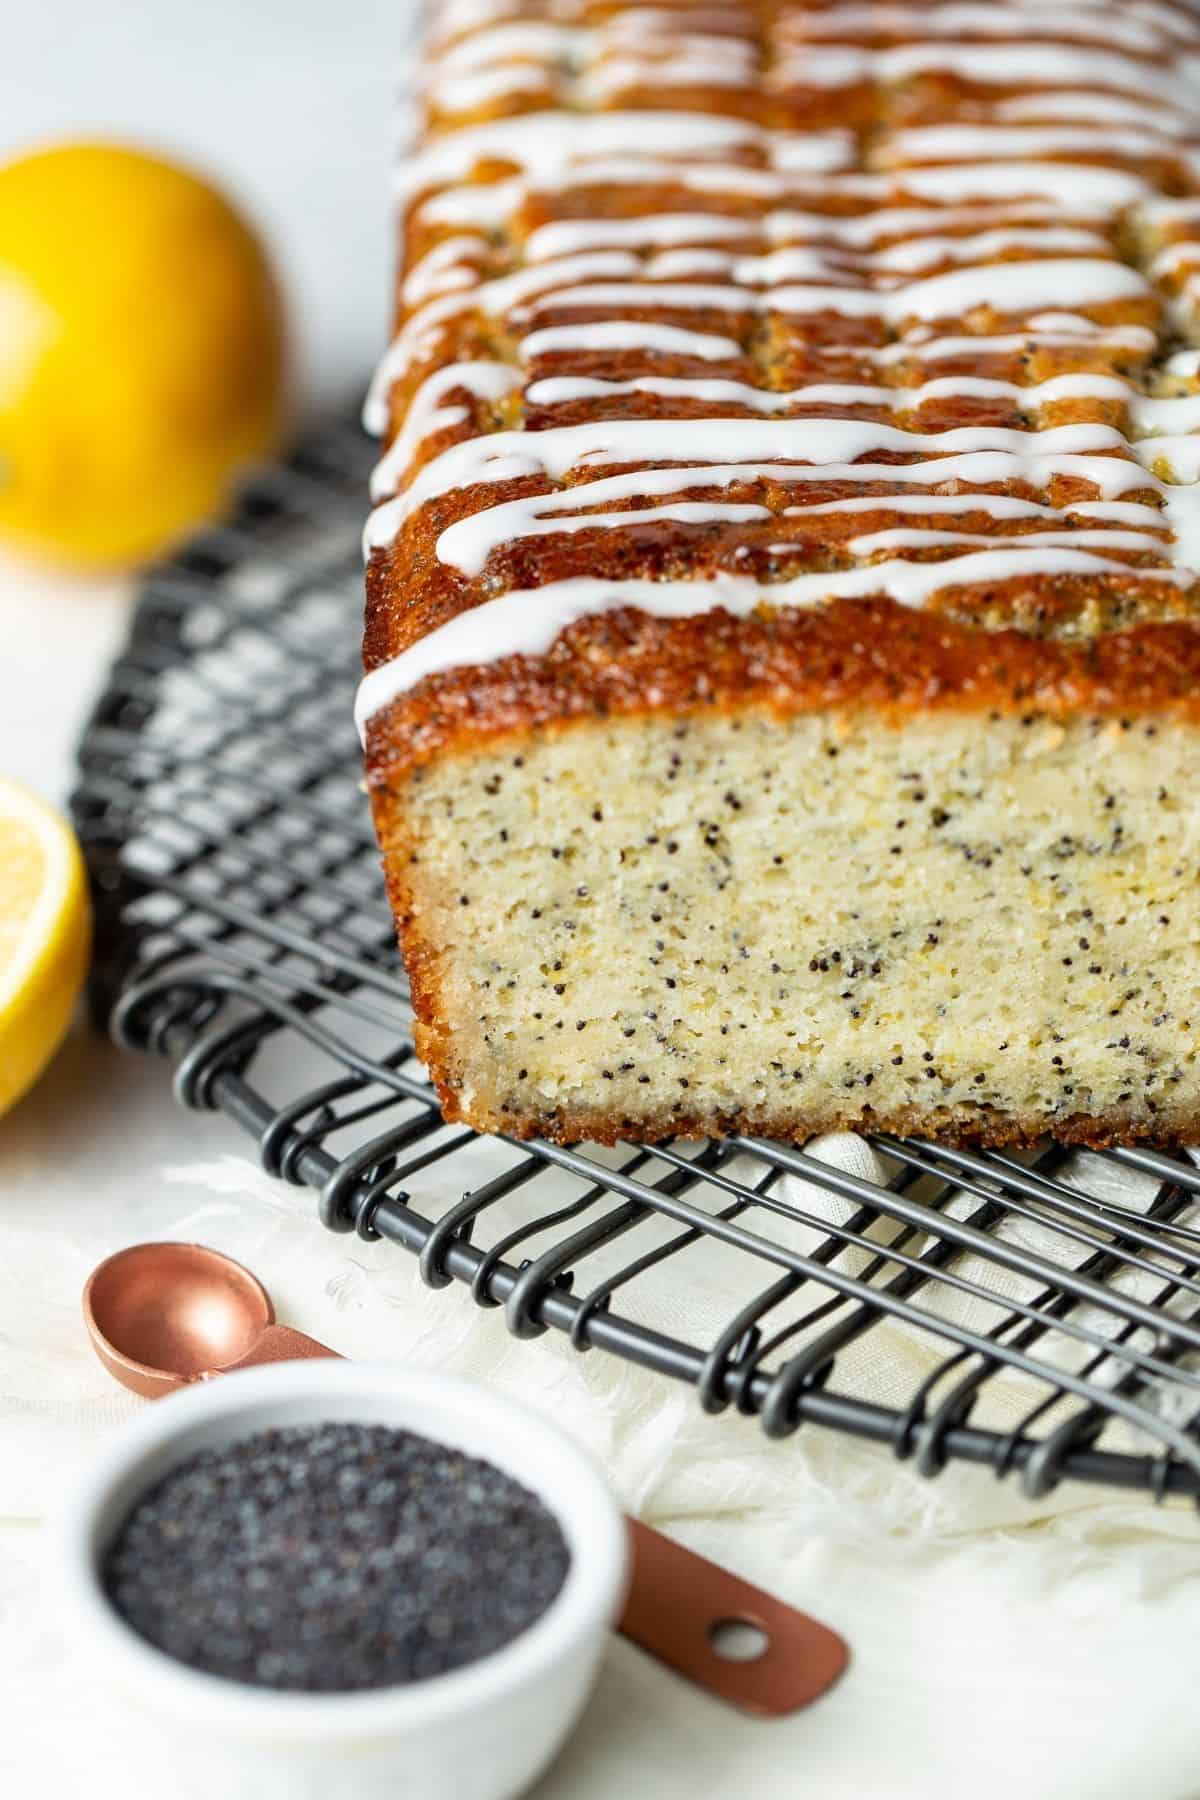 Loaf of lemon poppy seed bread drizzled with glaze on a wire cooling rack